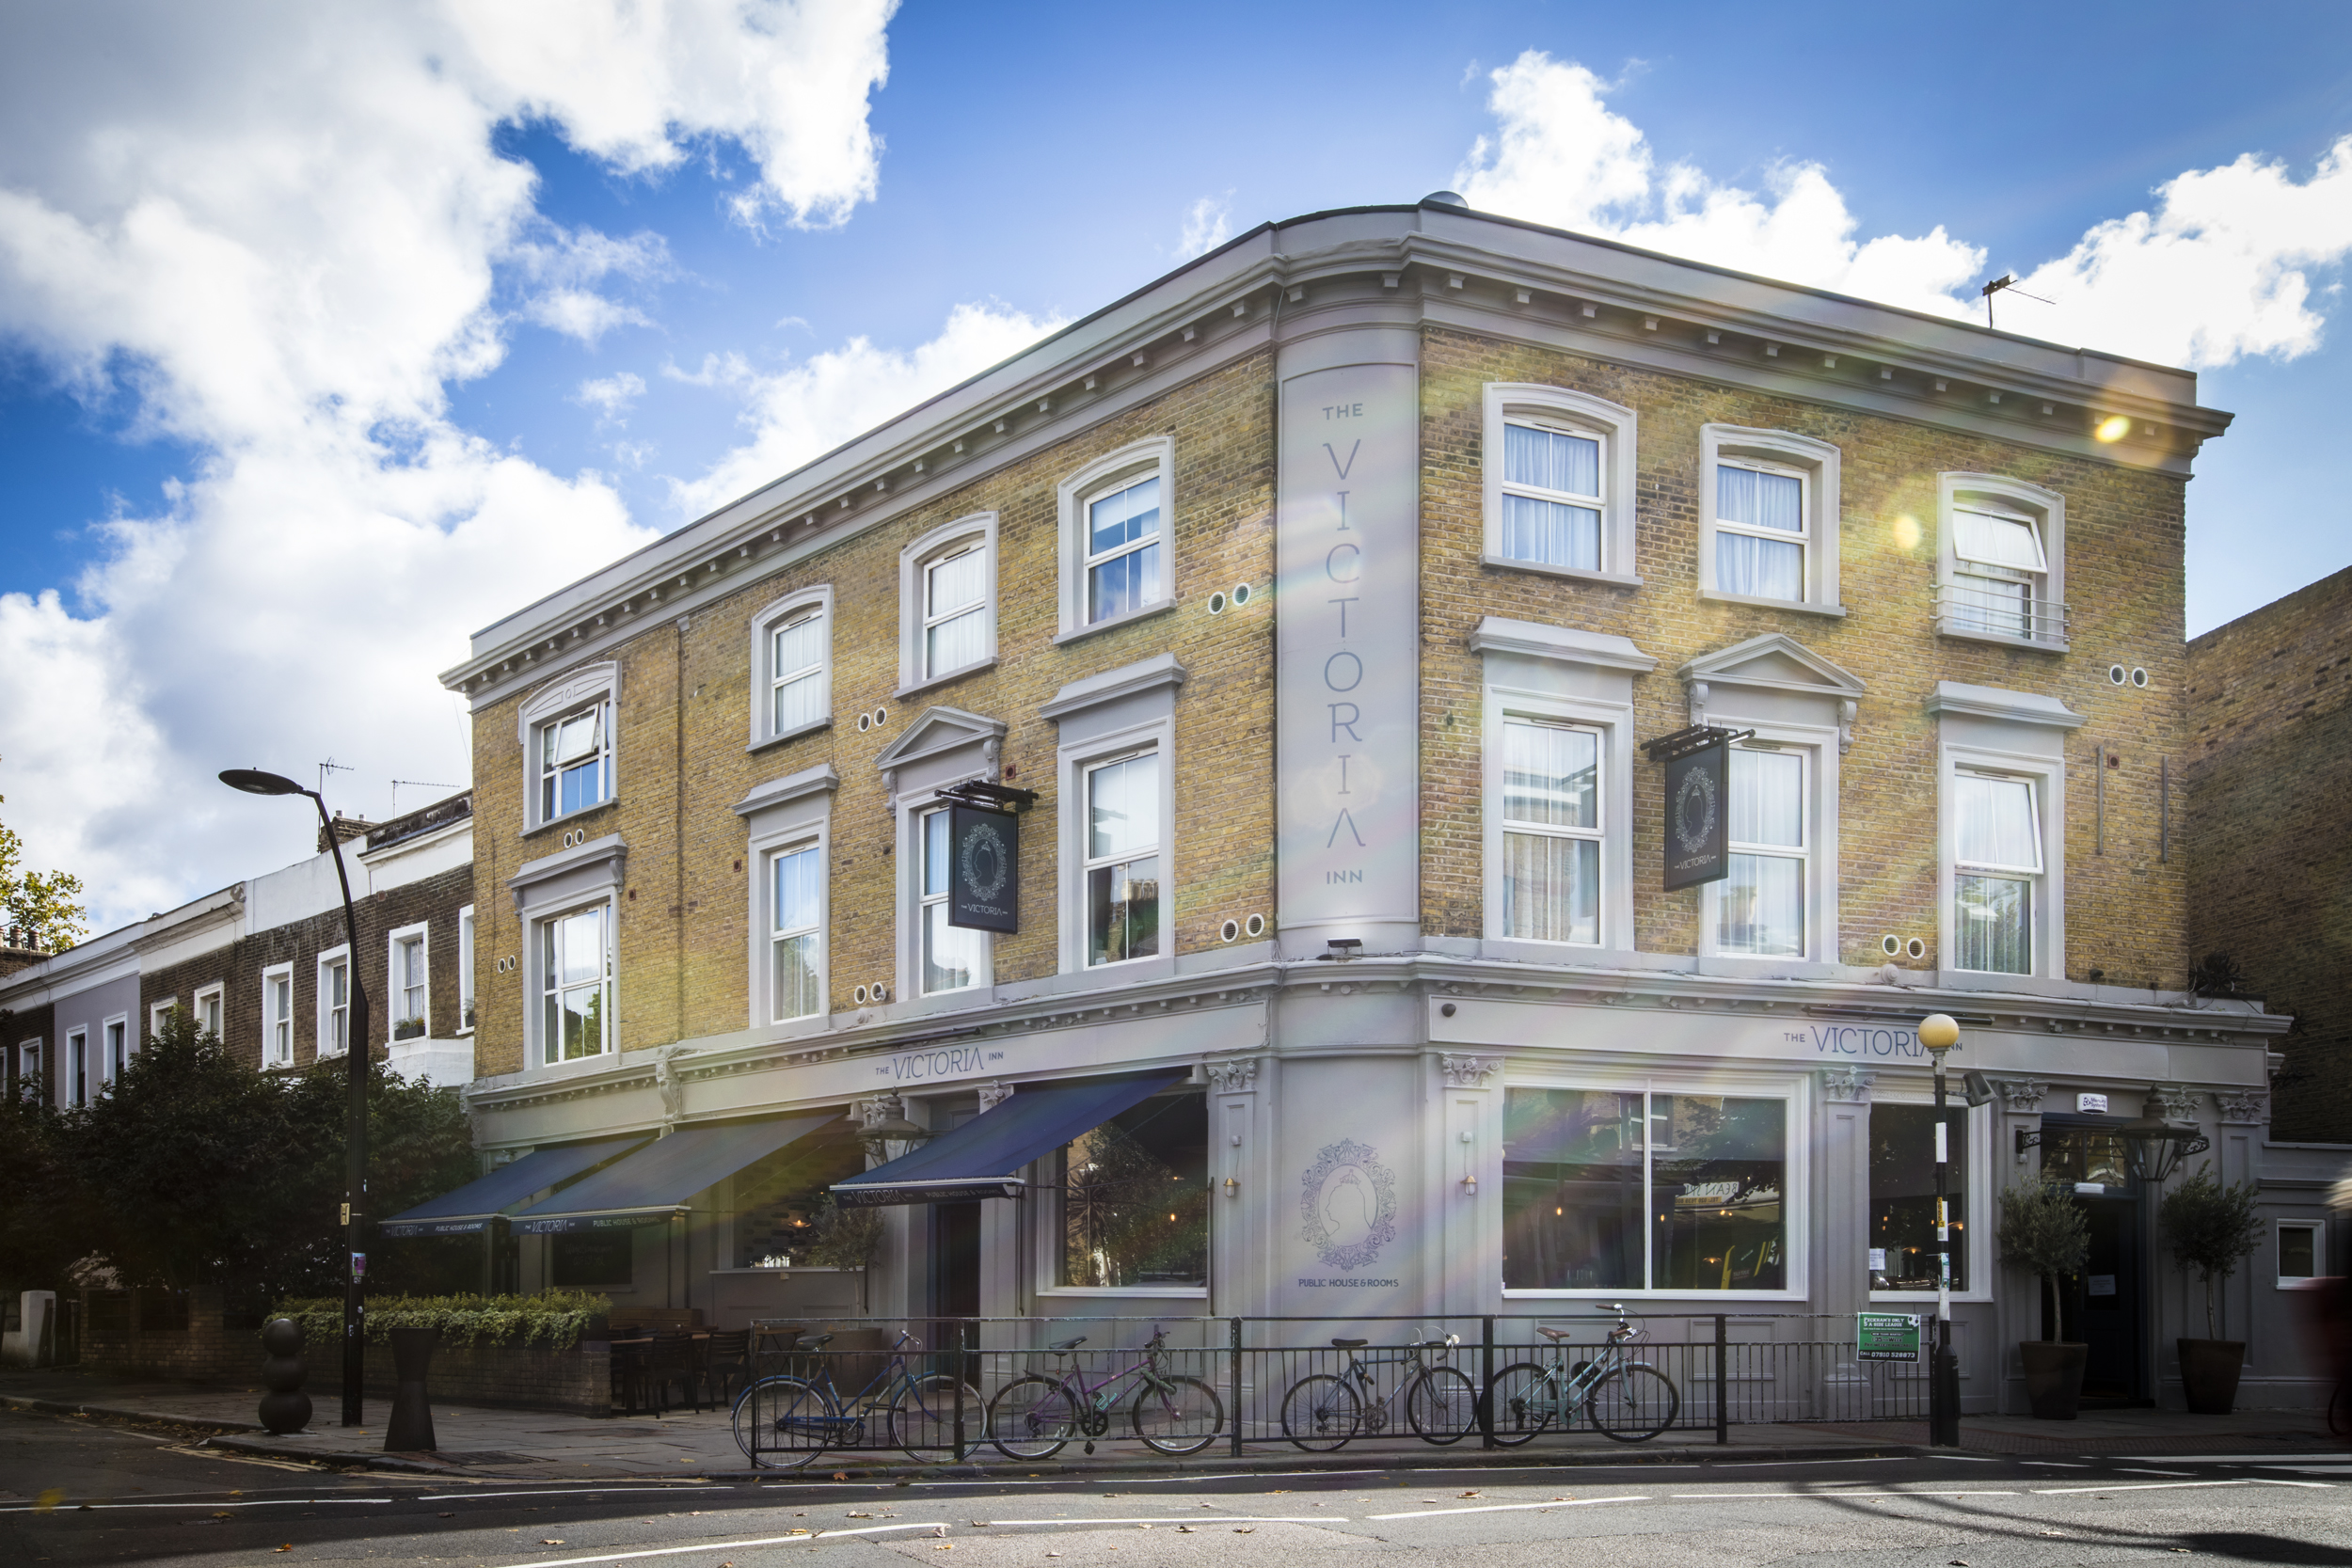 The Victoria Inn Hotel Peckham